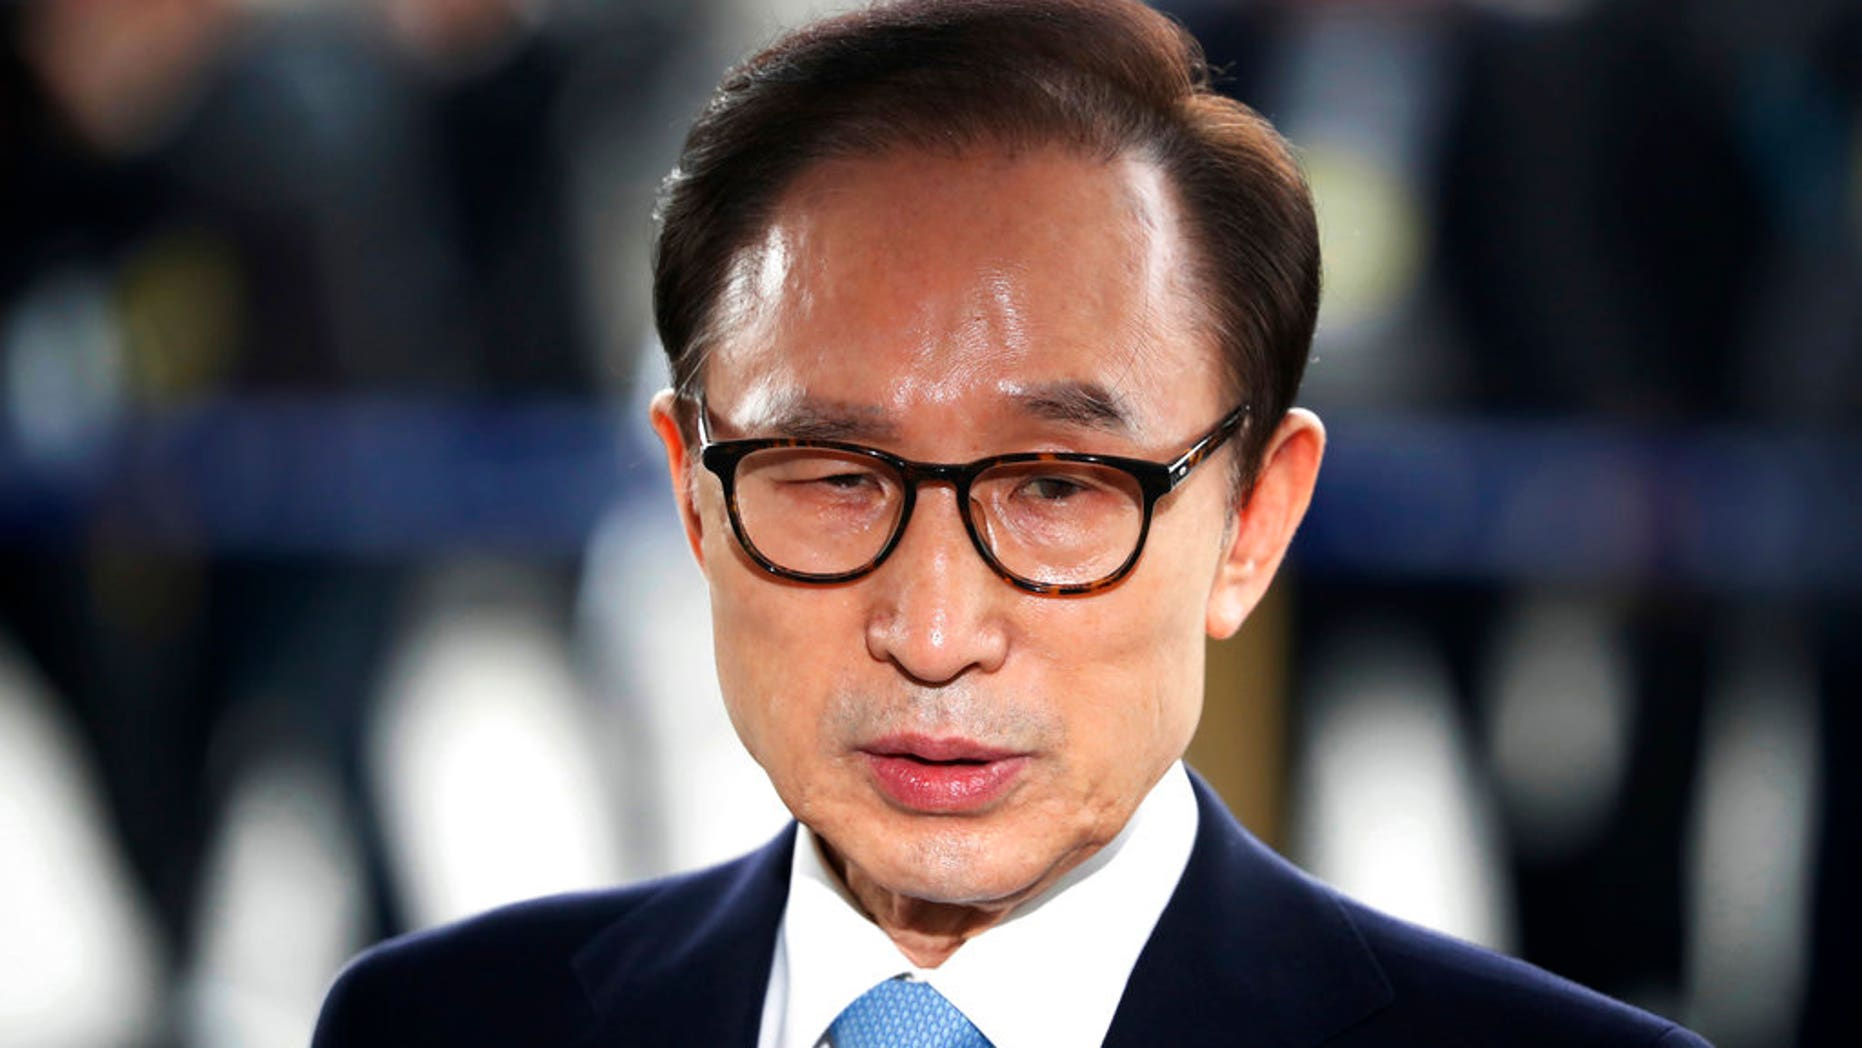 South Korean ex-leader Lee gets 15-year term for corruption